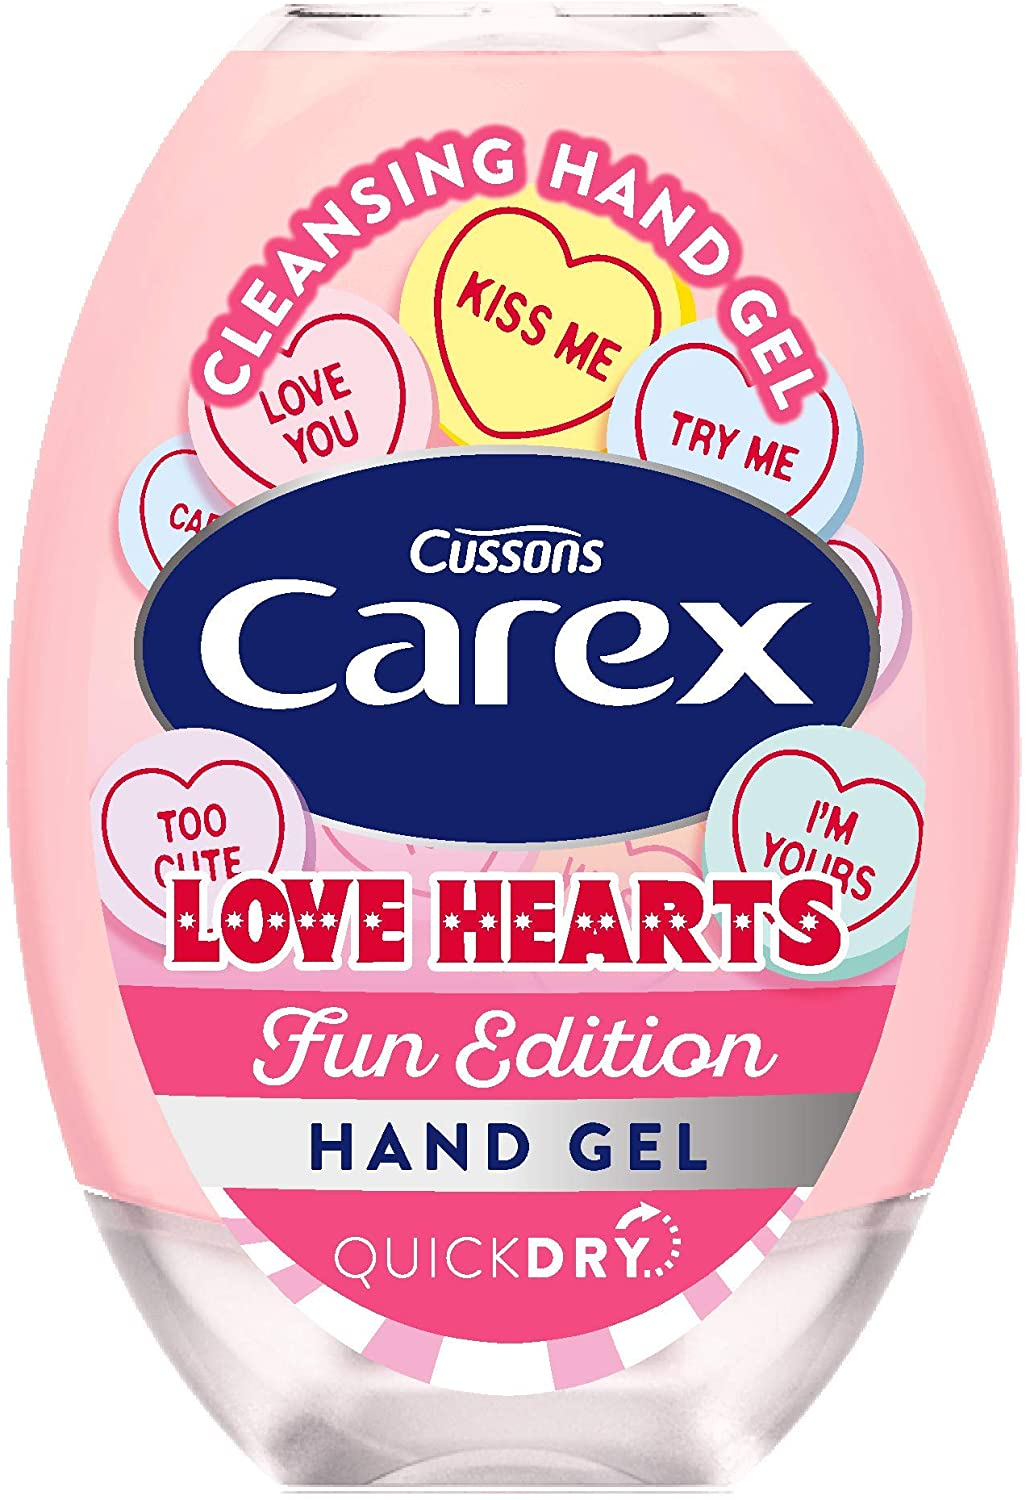 Carex cleansing hand gel